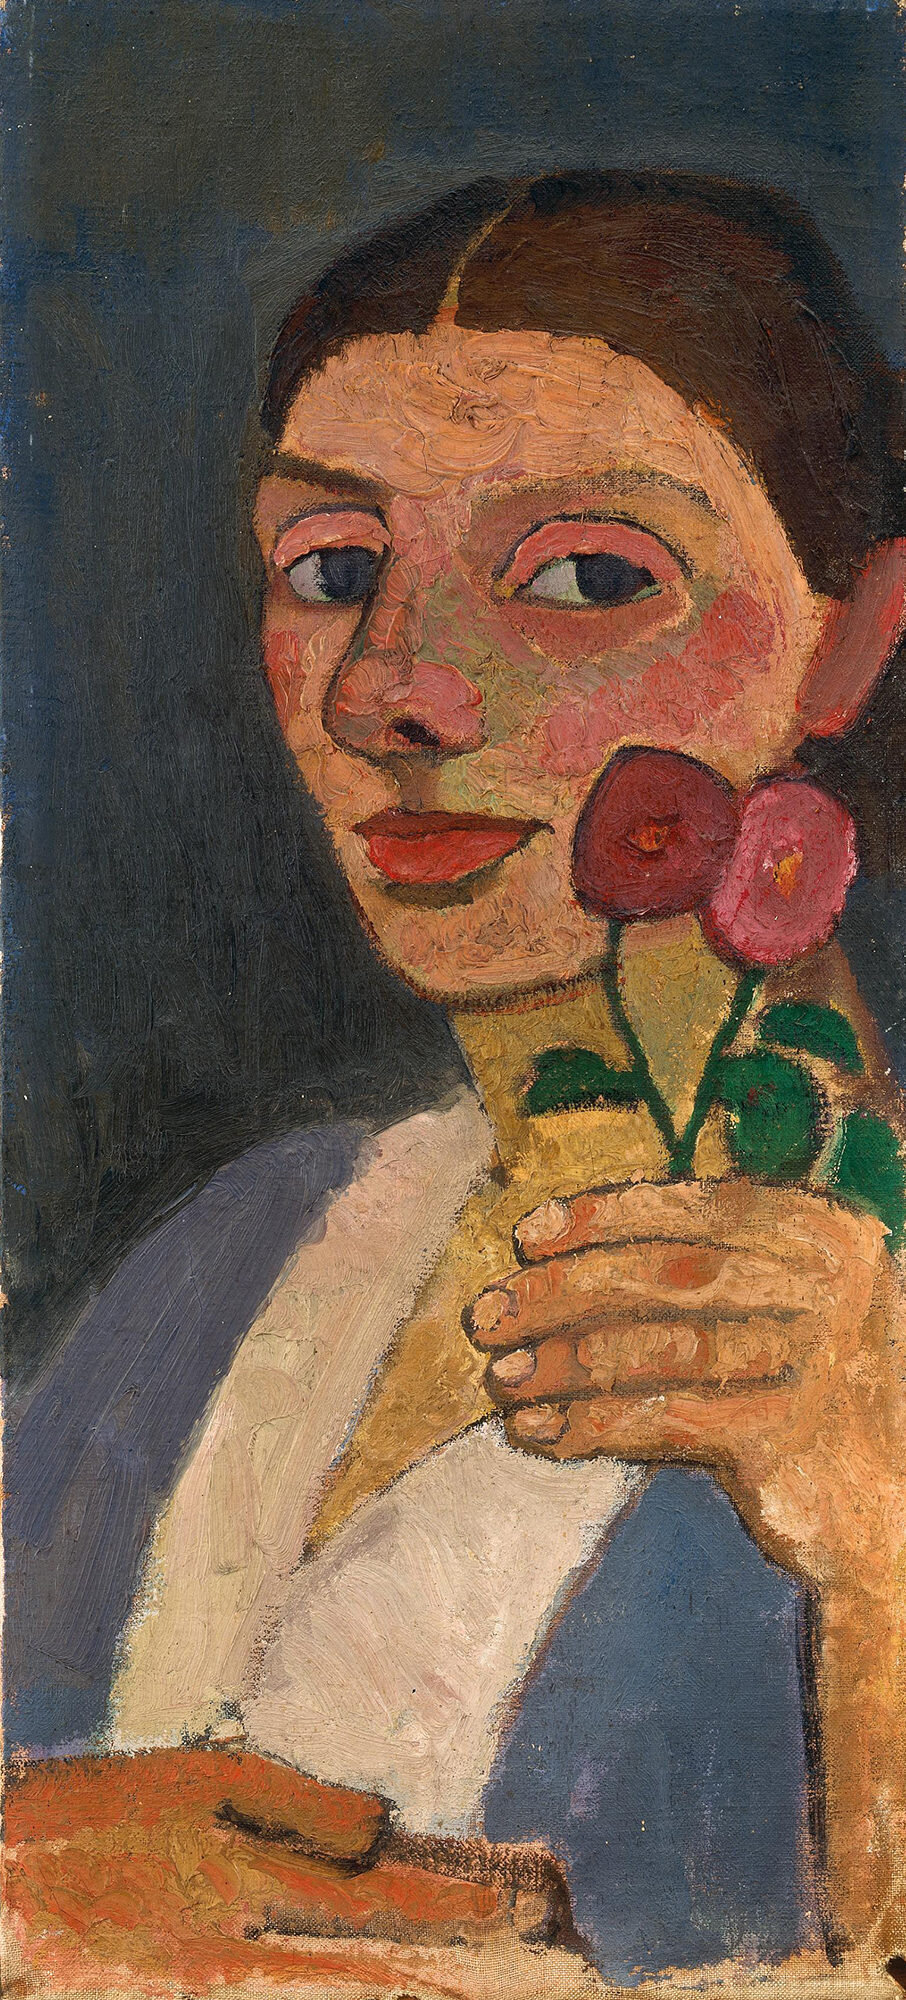 Paula Modersohn-Becker (German, 1876-1907).  Selbstbildnis mit zwei Blumen in der erhobenen linken Hand [Self-Portrait with Two Flowers in her Raised Left Hand].  1907. Oil on canvas. 21 3/4 x 9 6/8 in. (55 x 25 cm). The Museum of Modern Art, Gift of Debra and Leon Black, and The Neue Galerie, Gift of Ronald S. Lauder.